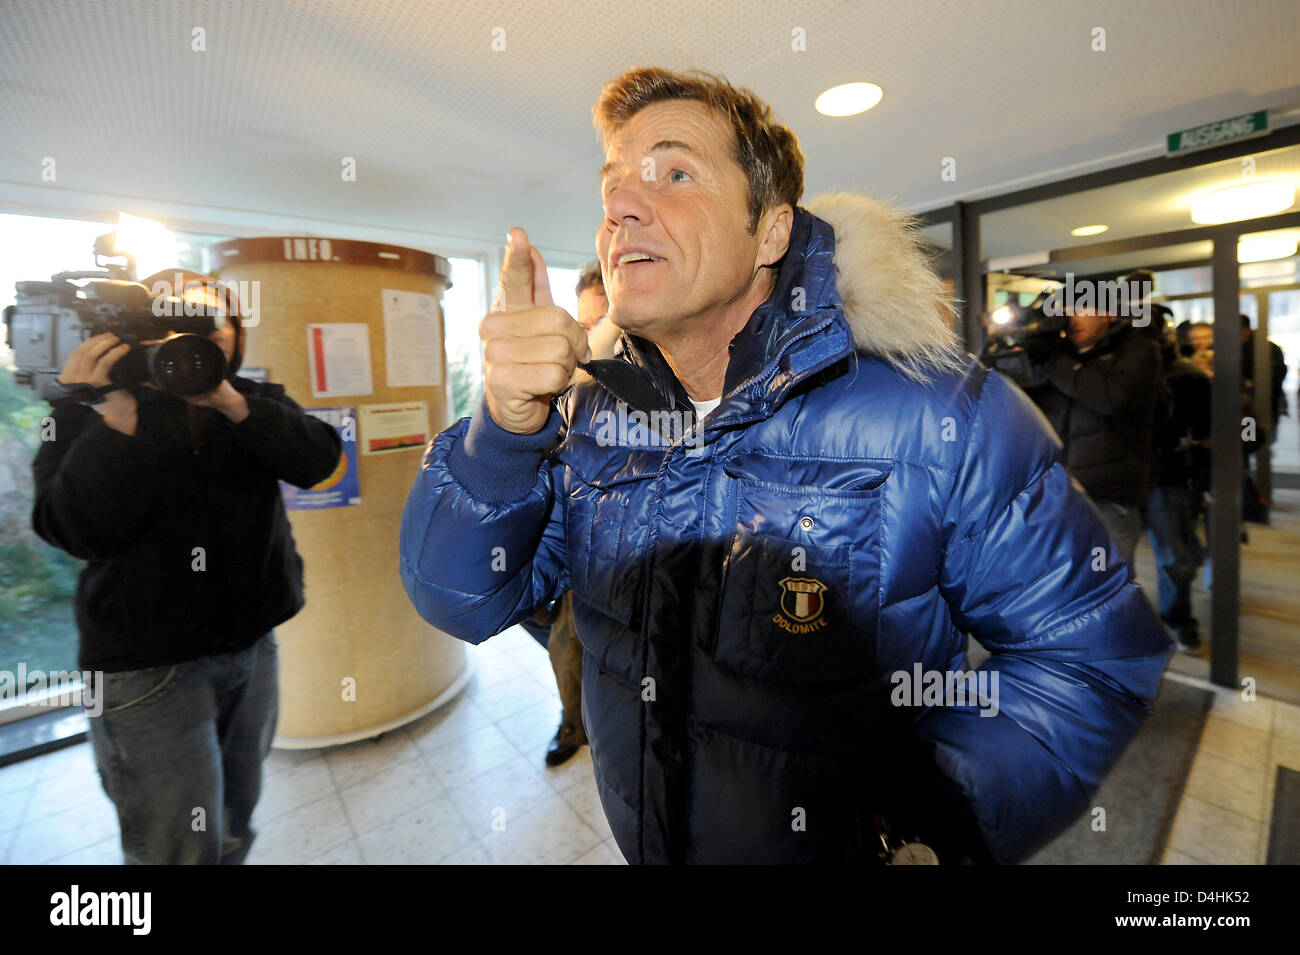 German music prodicer and tv presenter Dieter Bohlen arrives at the Regional Court in Luebeck, Germany, 19 January - Stock Image